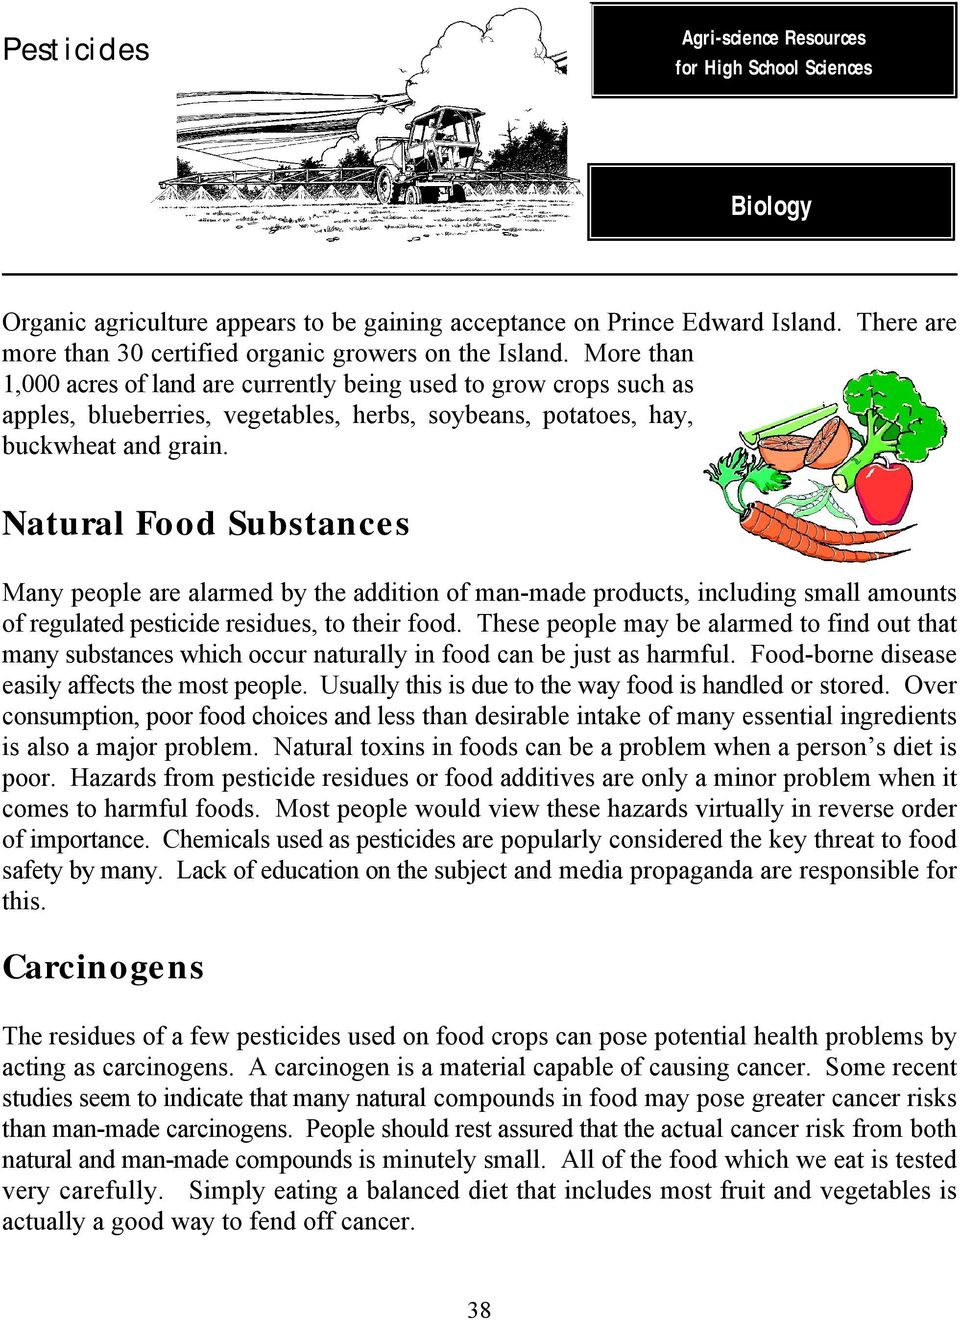 Natural Food Substances Many people are alarmed by the addition of man-made products, including small amounts of regulated pesticide residues, to their food.